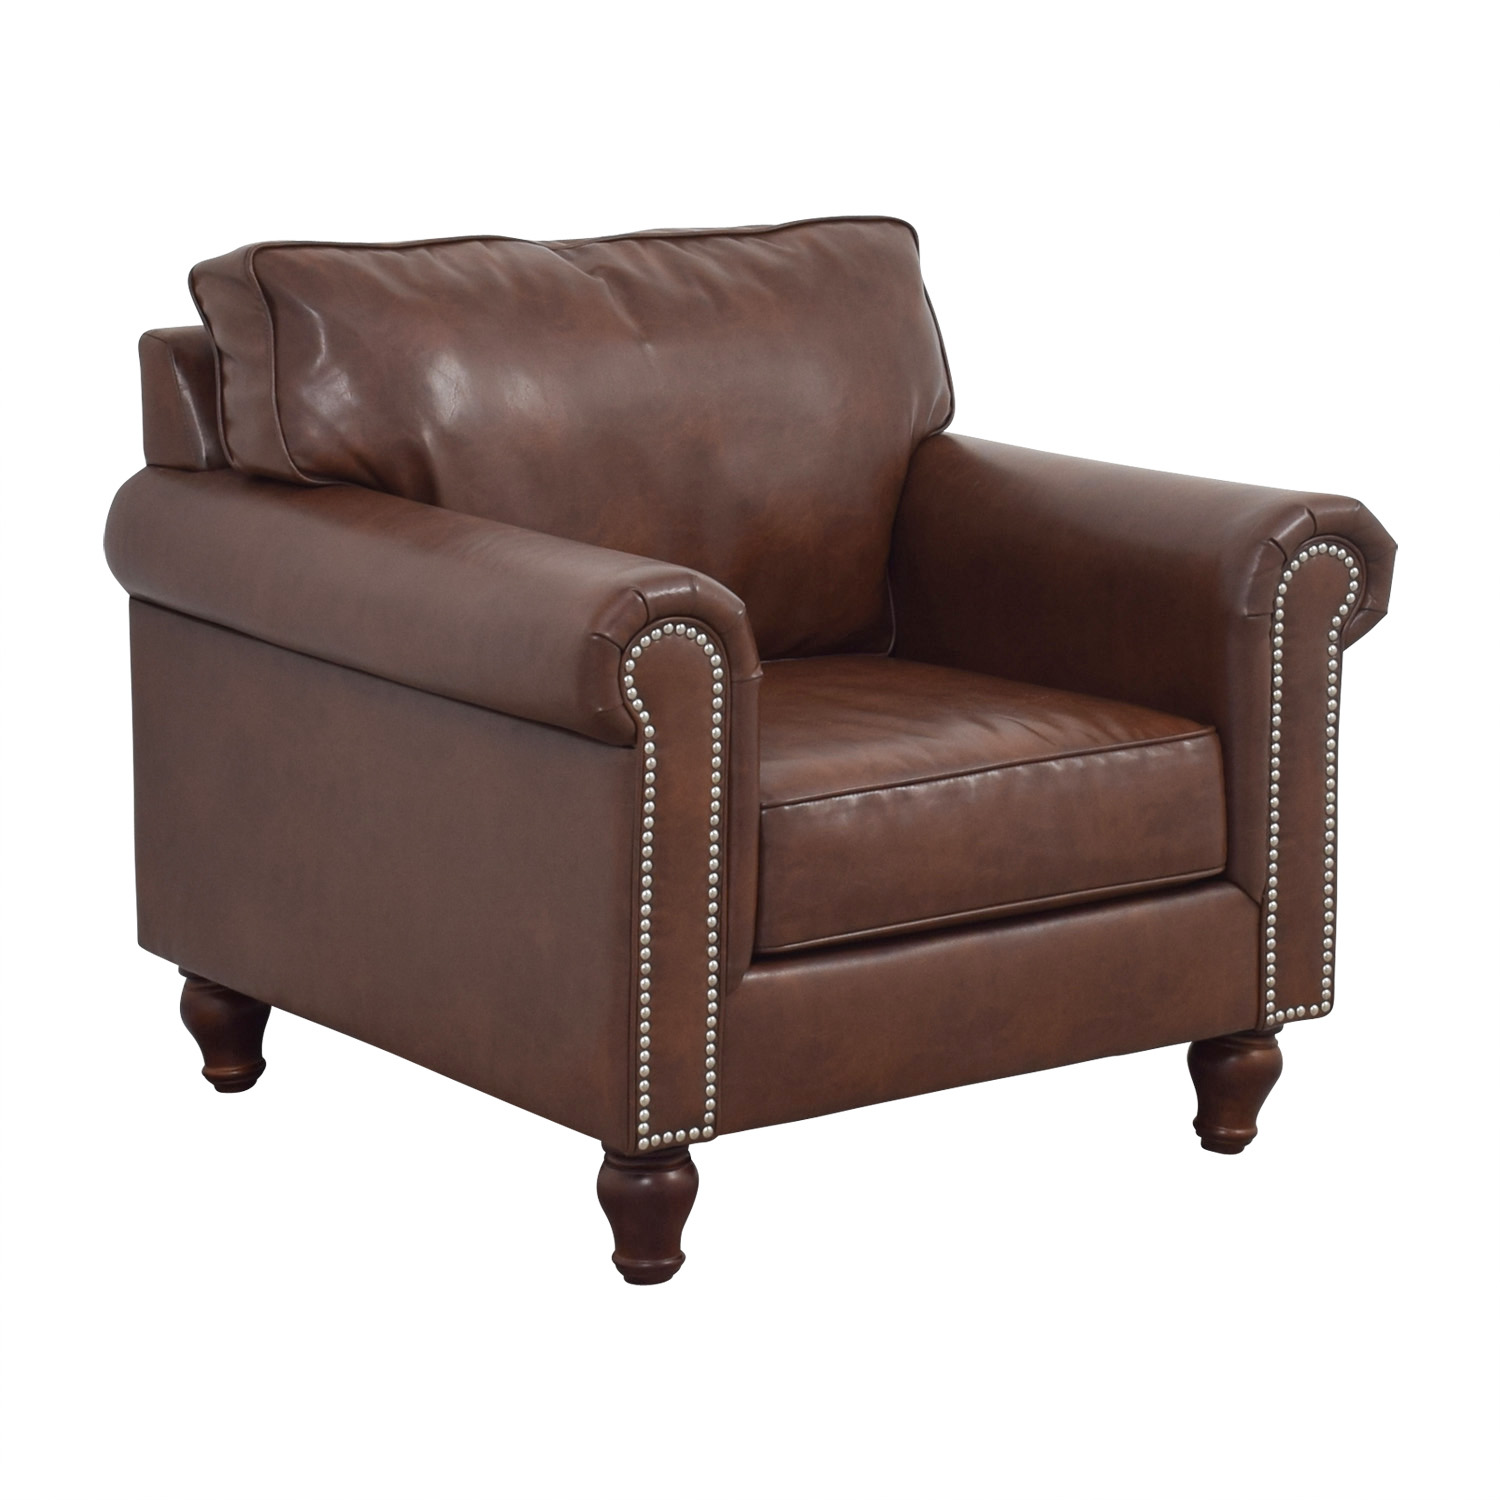 Pier 1 Imports Pier 1 Imports Alton Tobacco Brown Rolled Nailhead Armchair nyc